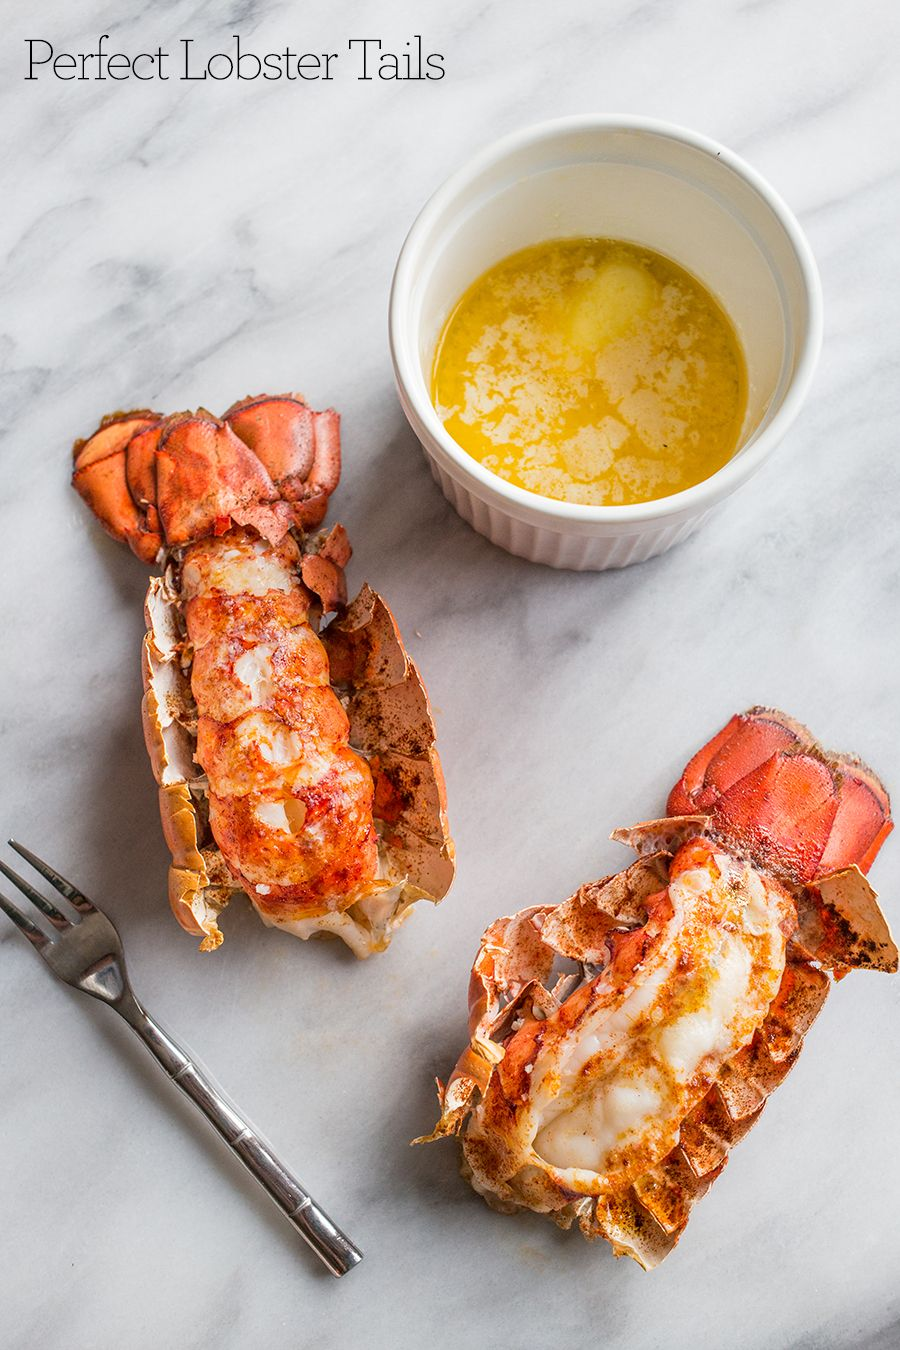 The Best Easy Broiled Lobster Tails Recipe - Oven Baked Lobster Tails